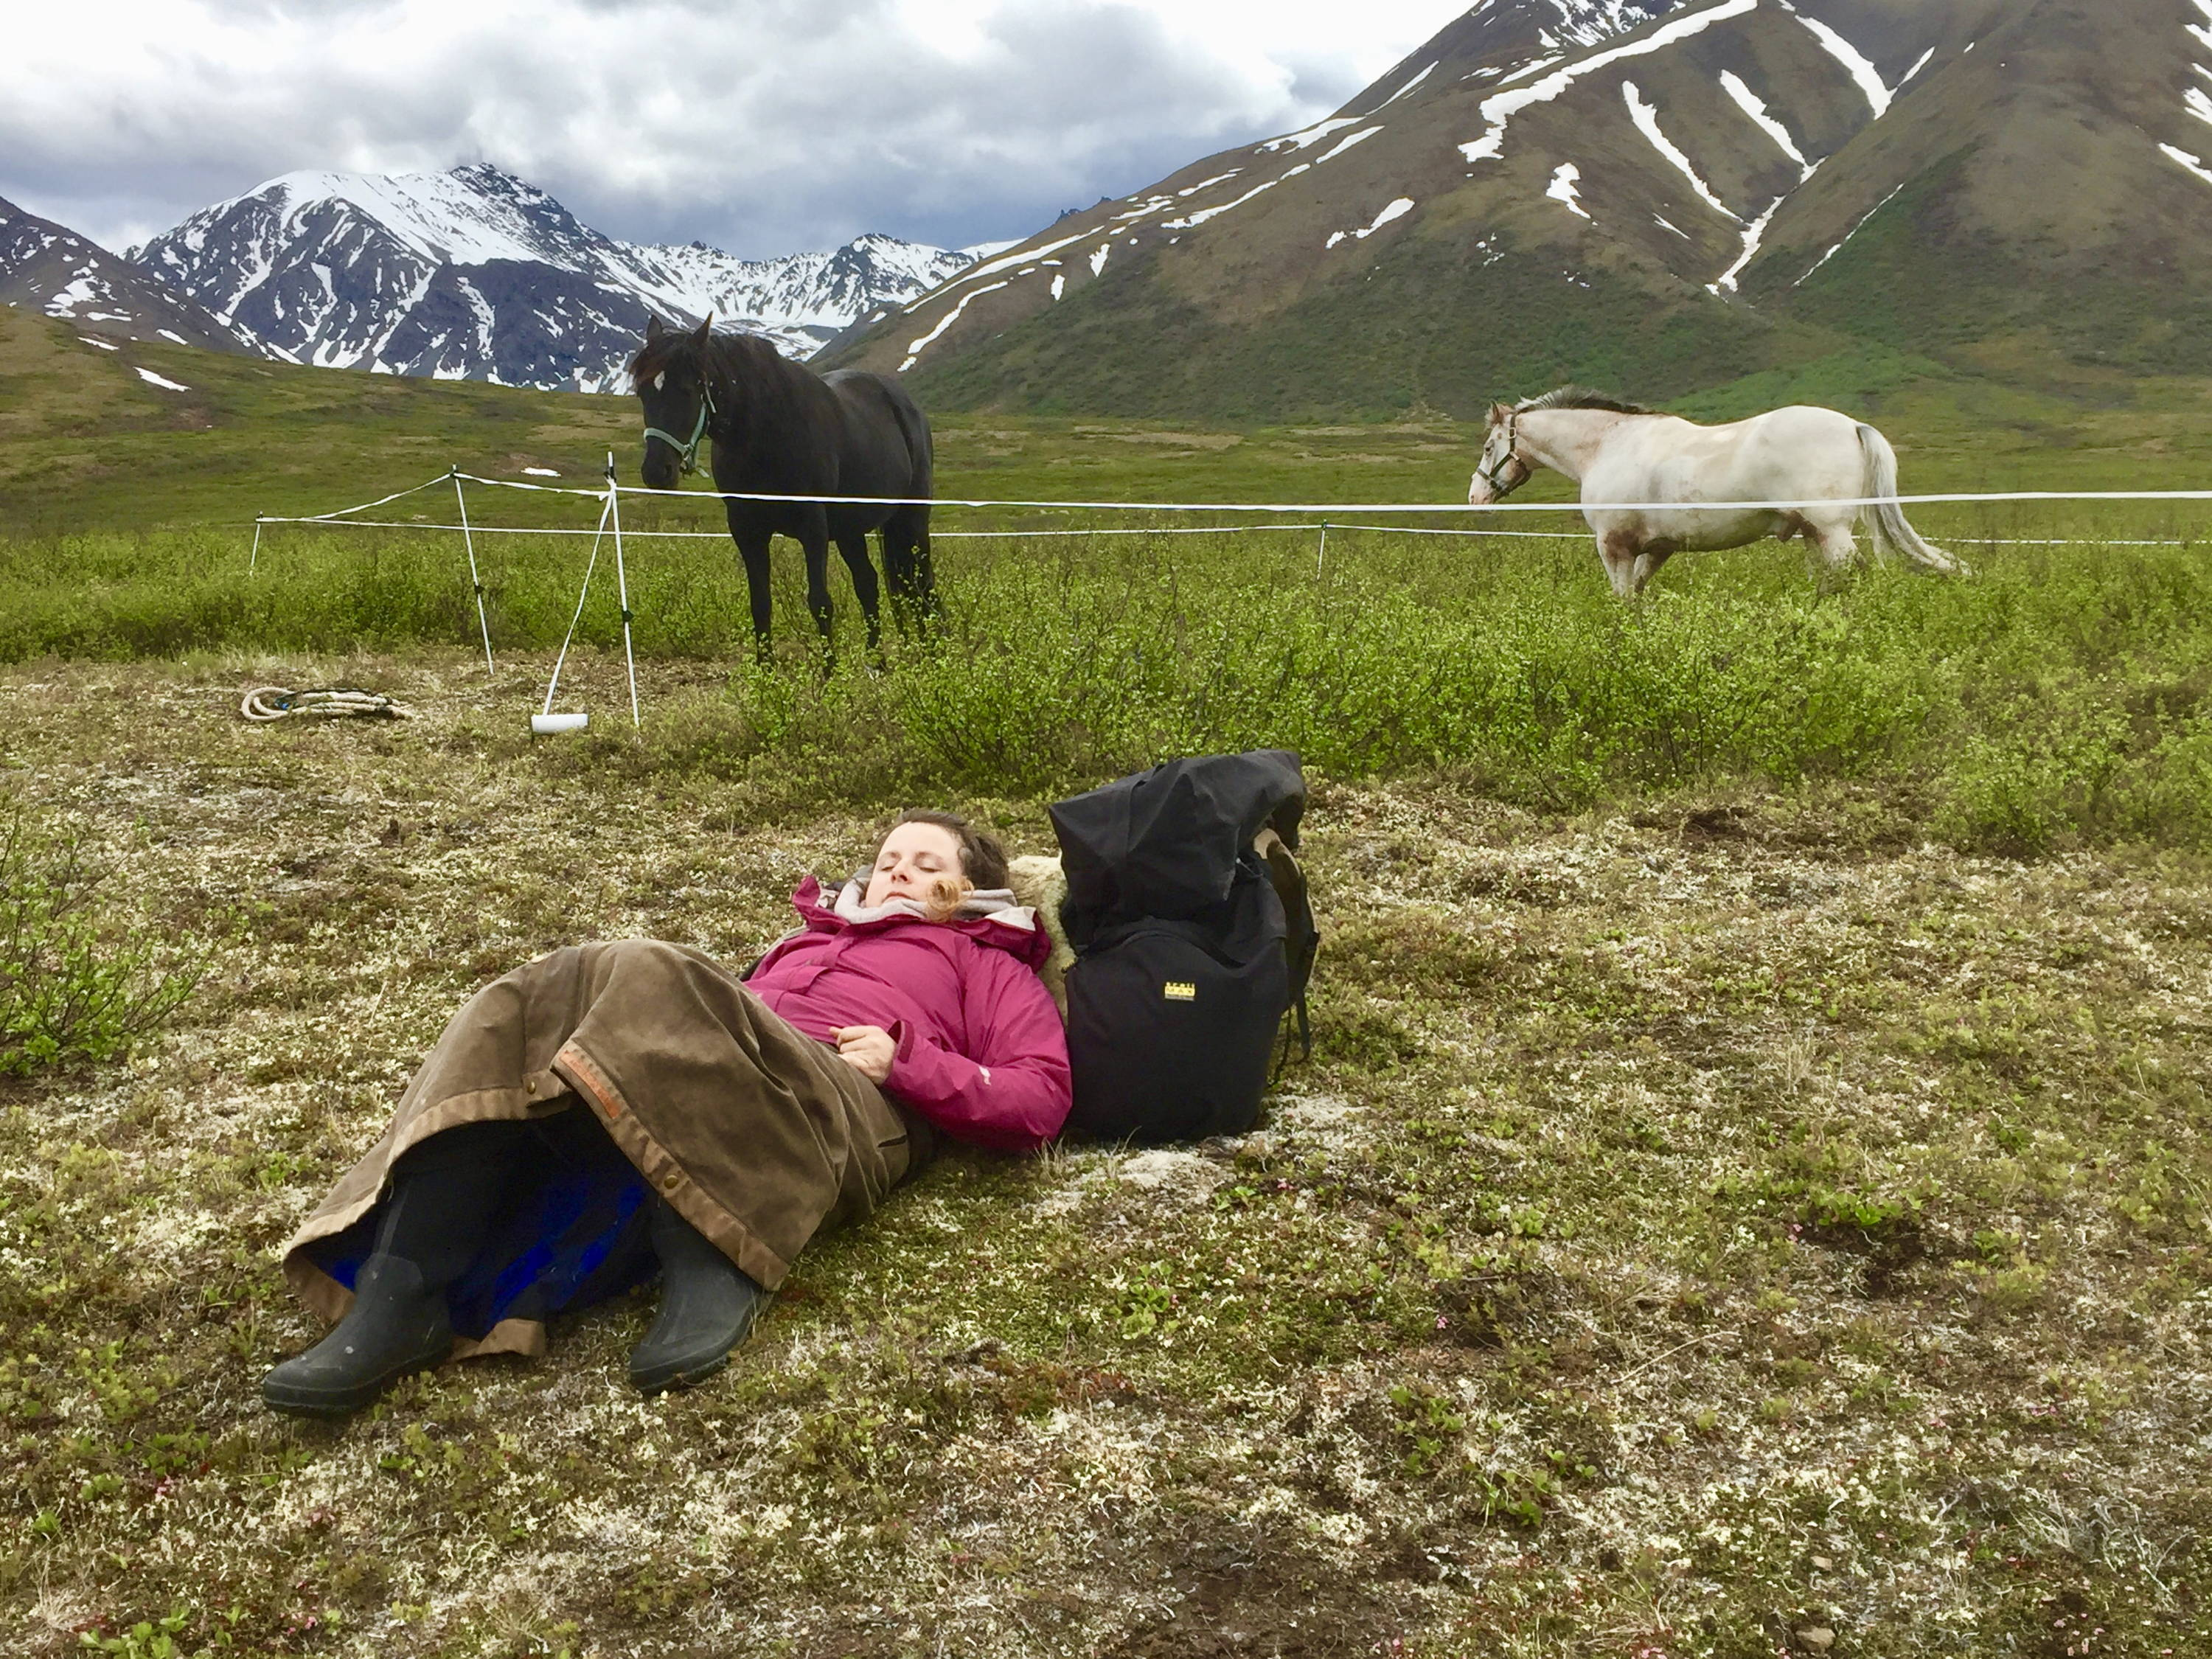 Arctic Horse horse trekking trail riding denali alaska windy creek camping with horses backcountry trail skirt